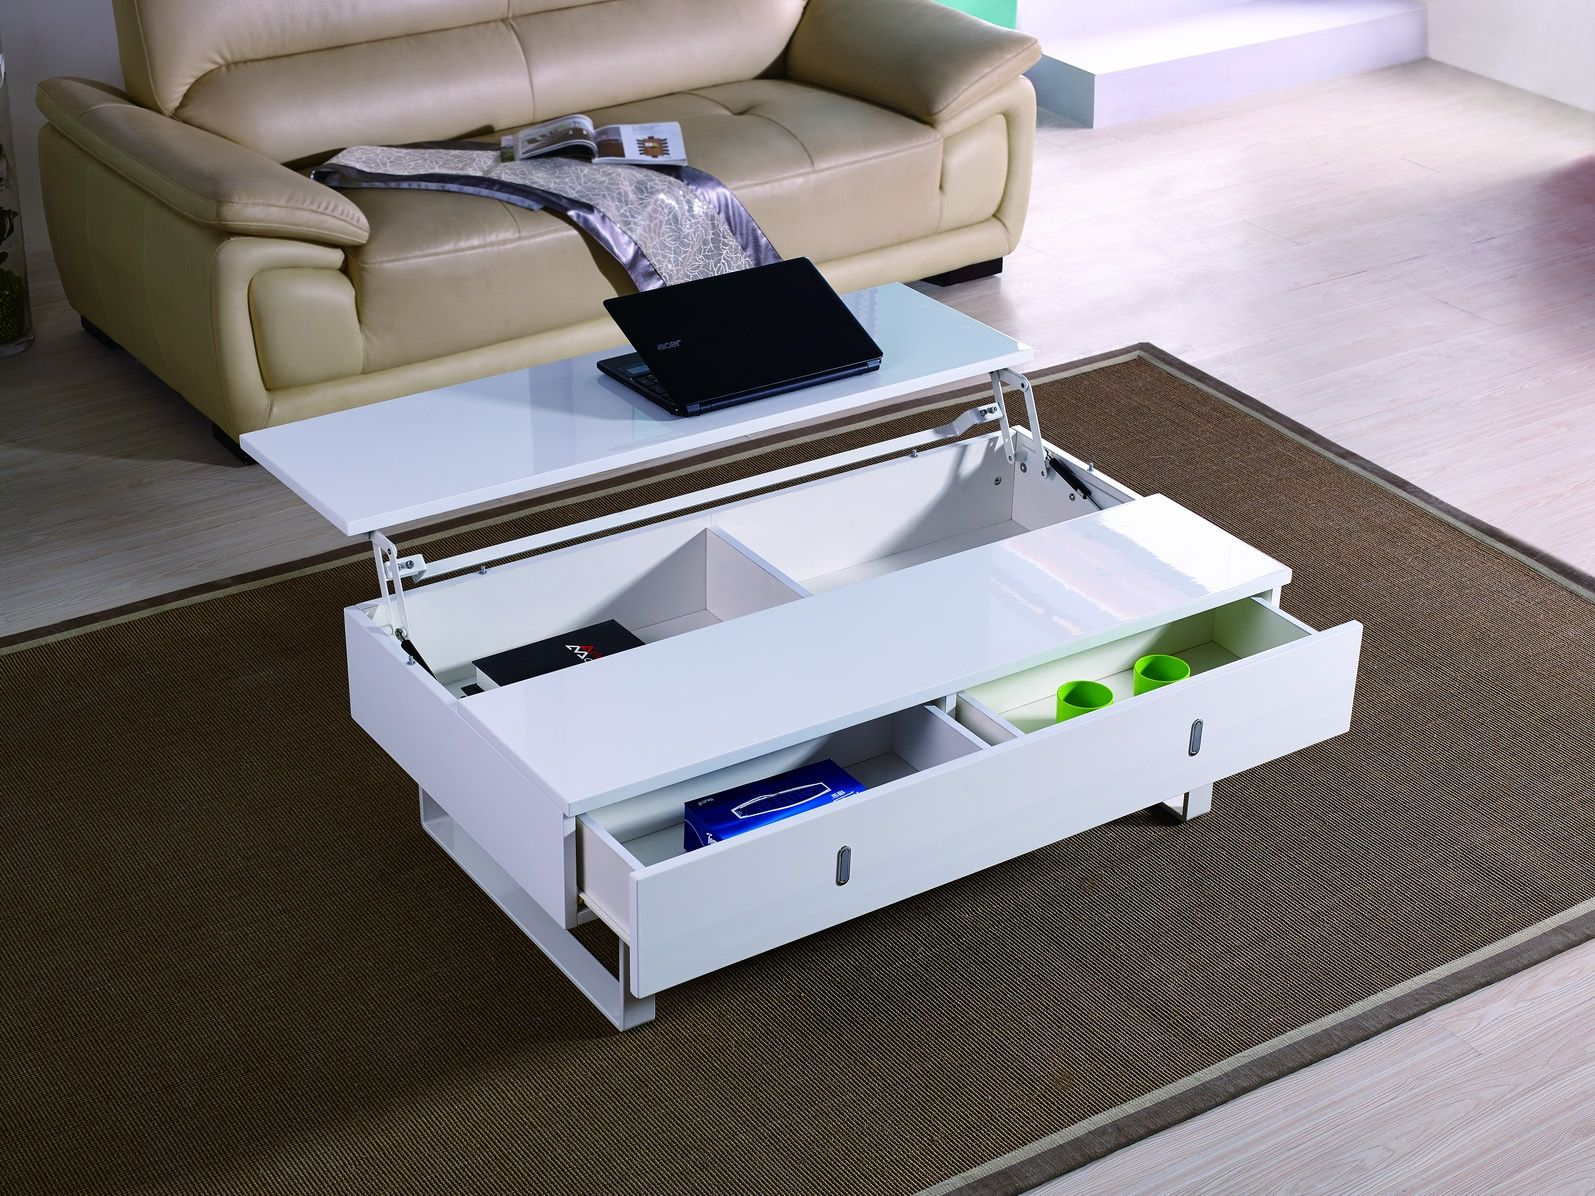 Table Basse Laque Blanc Mutifonction Easy Easy Laque Blanc Table Basse Laquee Table Basse Table Basse Relevable